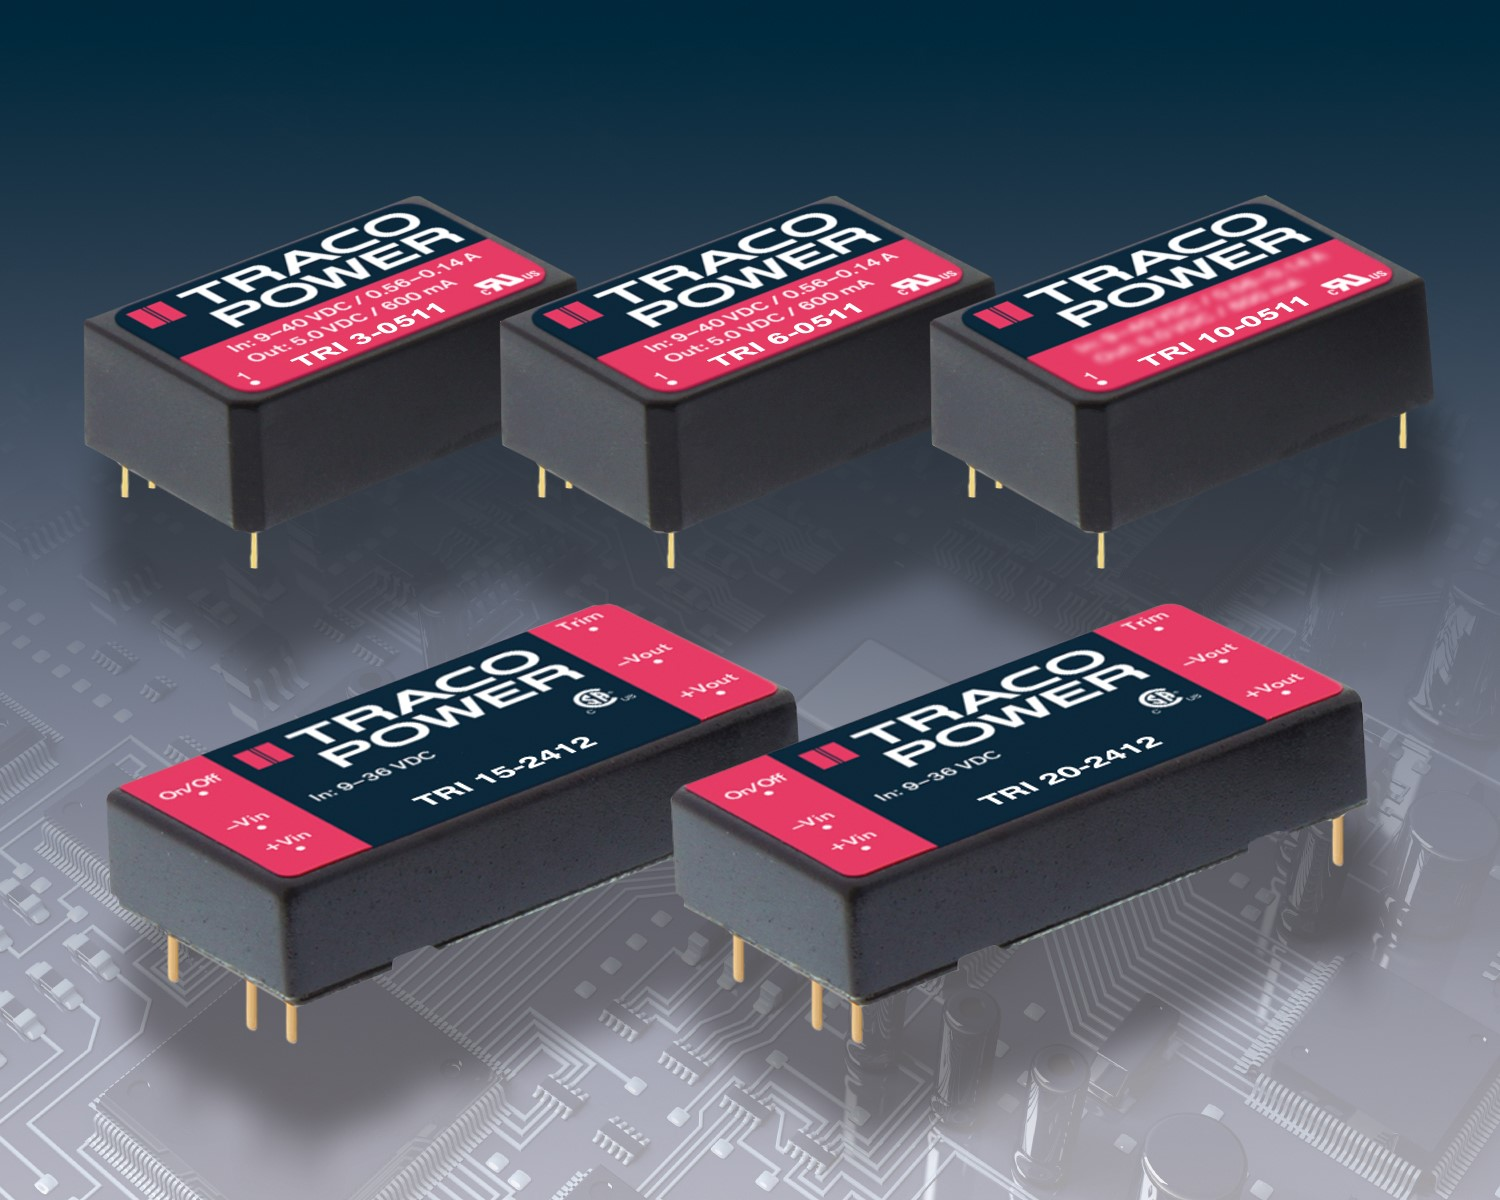 TRACO POWER releases TRI Series of DC/DC converters